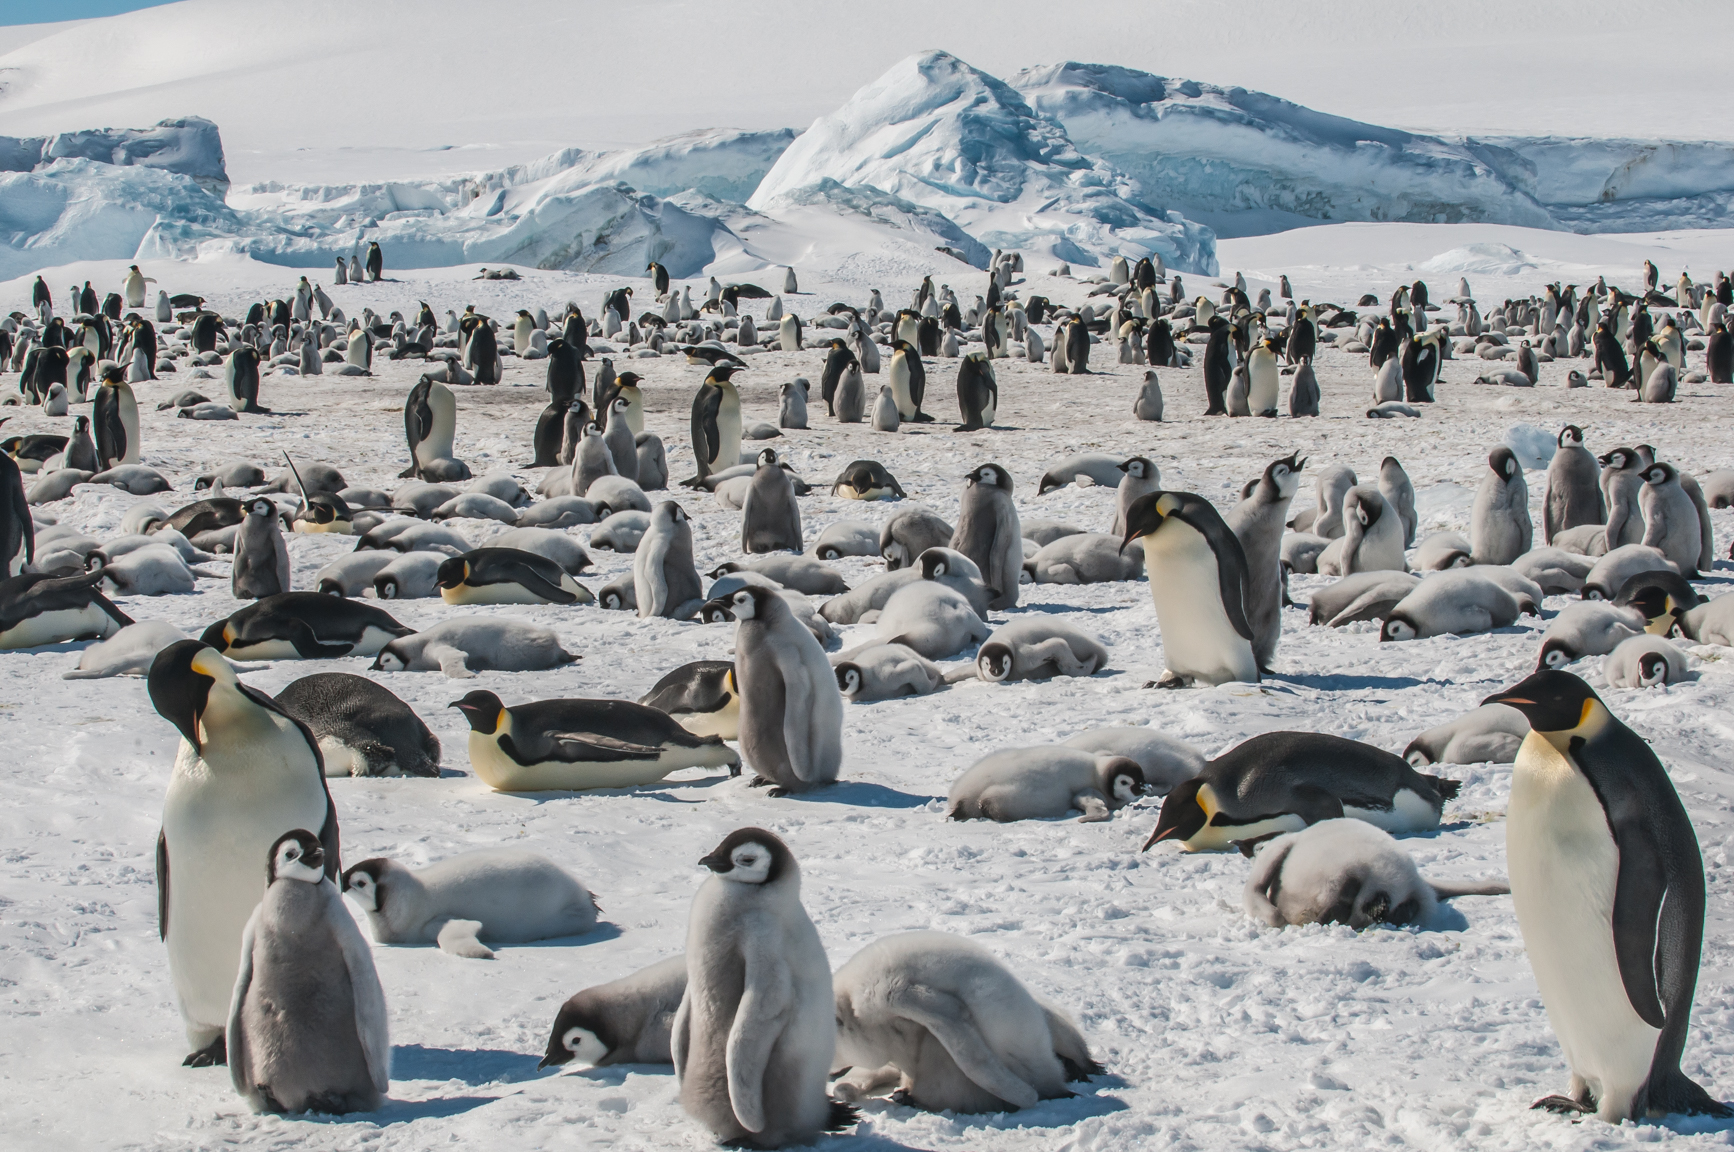 The Snow Hill Island Emperor Penguin rookery